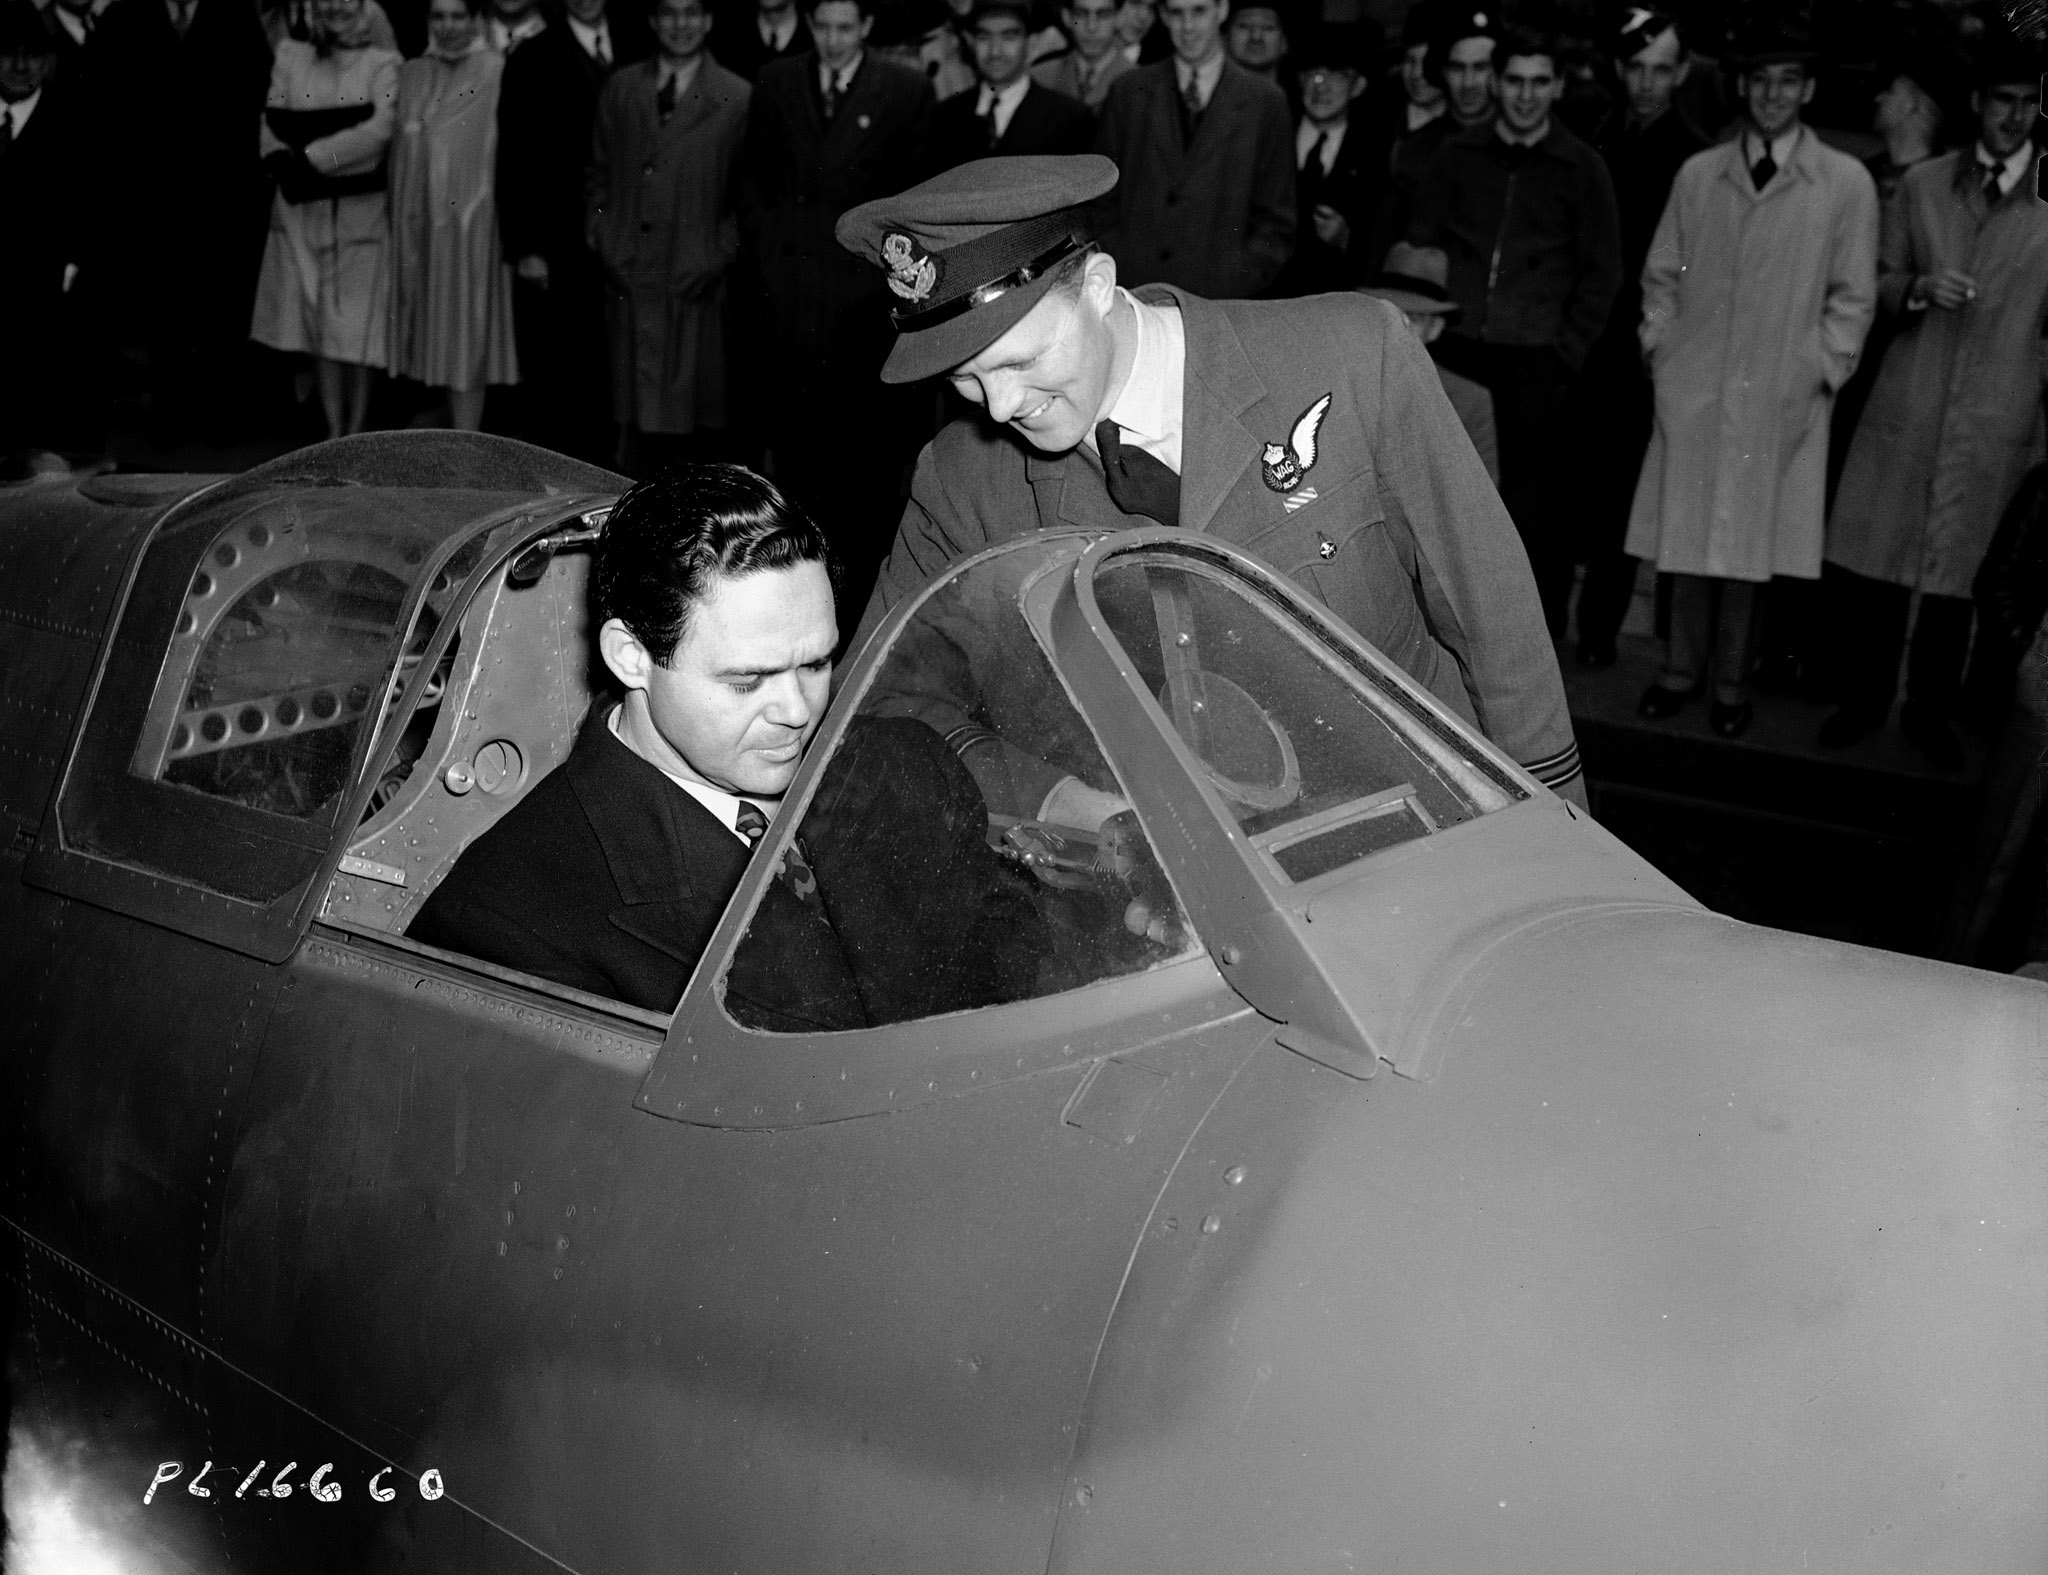 Flight Lieutenant George A. Casey, who received the Distinguished Flying Cross for his work at Dieppe, shows the New York City Metropolitan Opera's James Melton around the cockpit of a Spitfire fighter aircraft outside City Hall at the start of Air Force Week in Toronto on May 10, 1943. The two had just addressed a huge crowd gathered at City Hall for the first day of Air Force Week and the last day of the fourth Victory Loan Drive. PHOTO: DND Archives, PL-16660